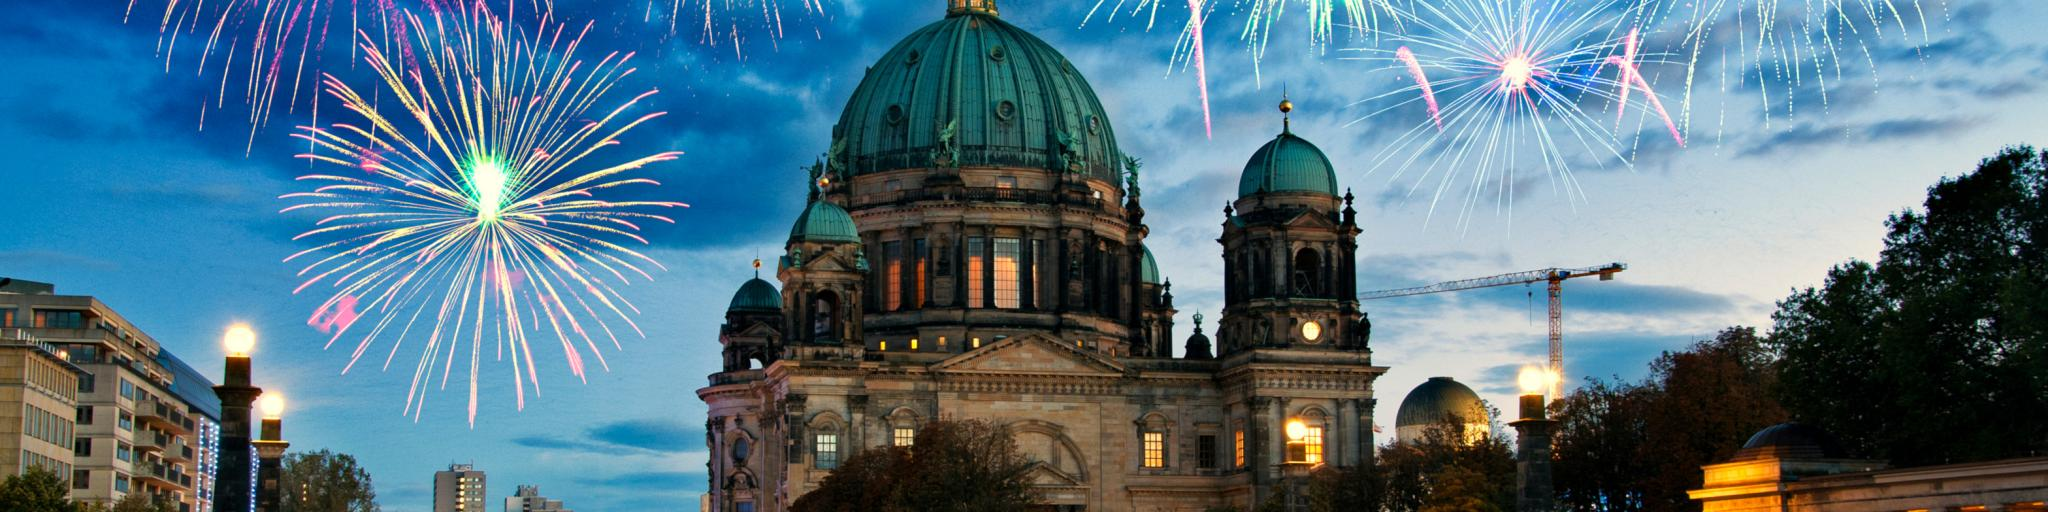 Berlin city break - a perfect evening with fireworks